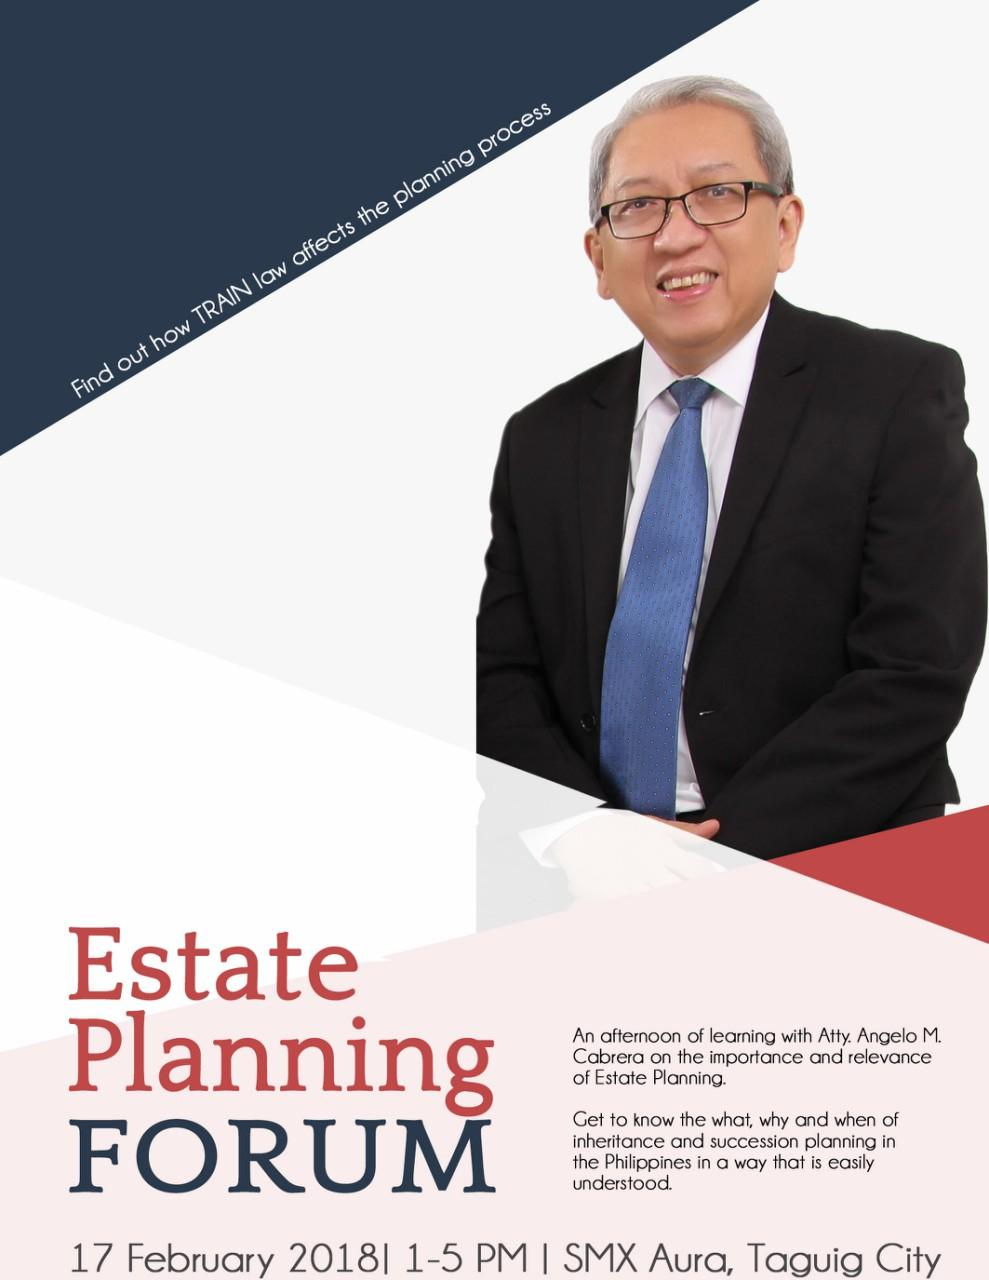 Estate Planning Forum with Atty. Angelo M. Cabrera